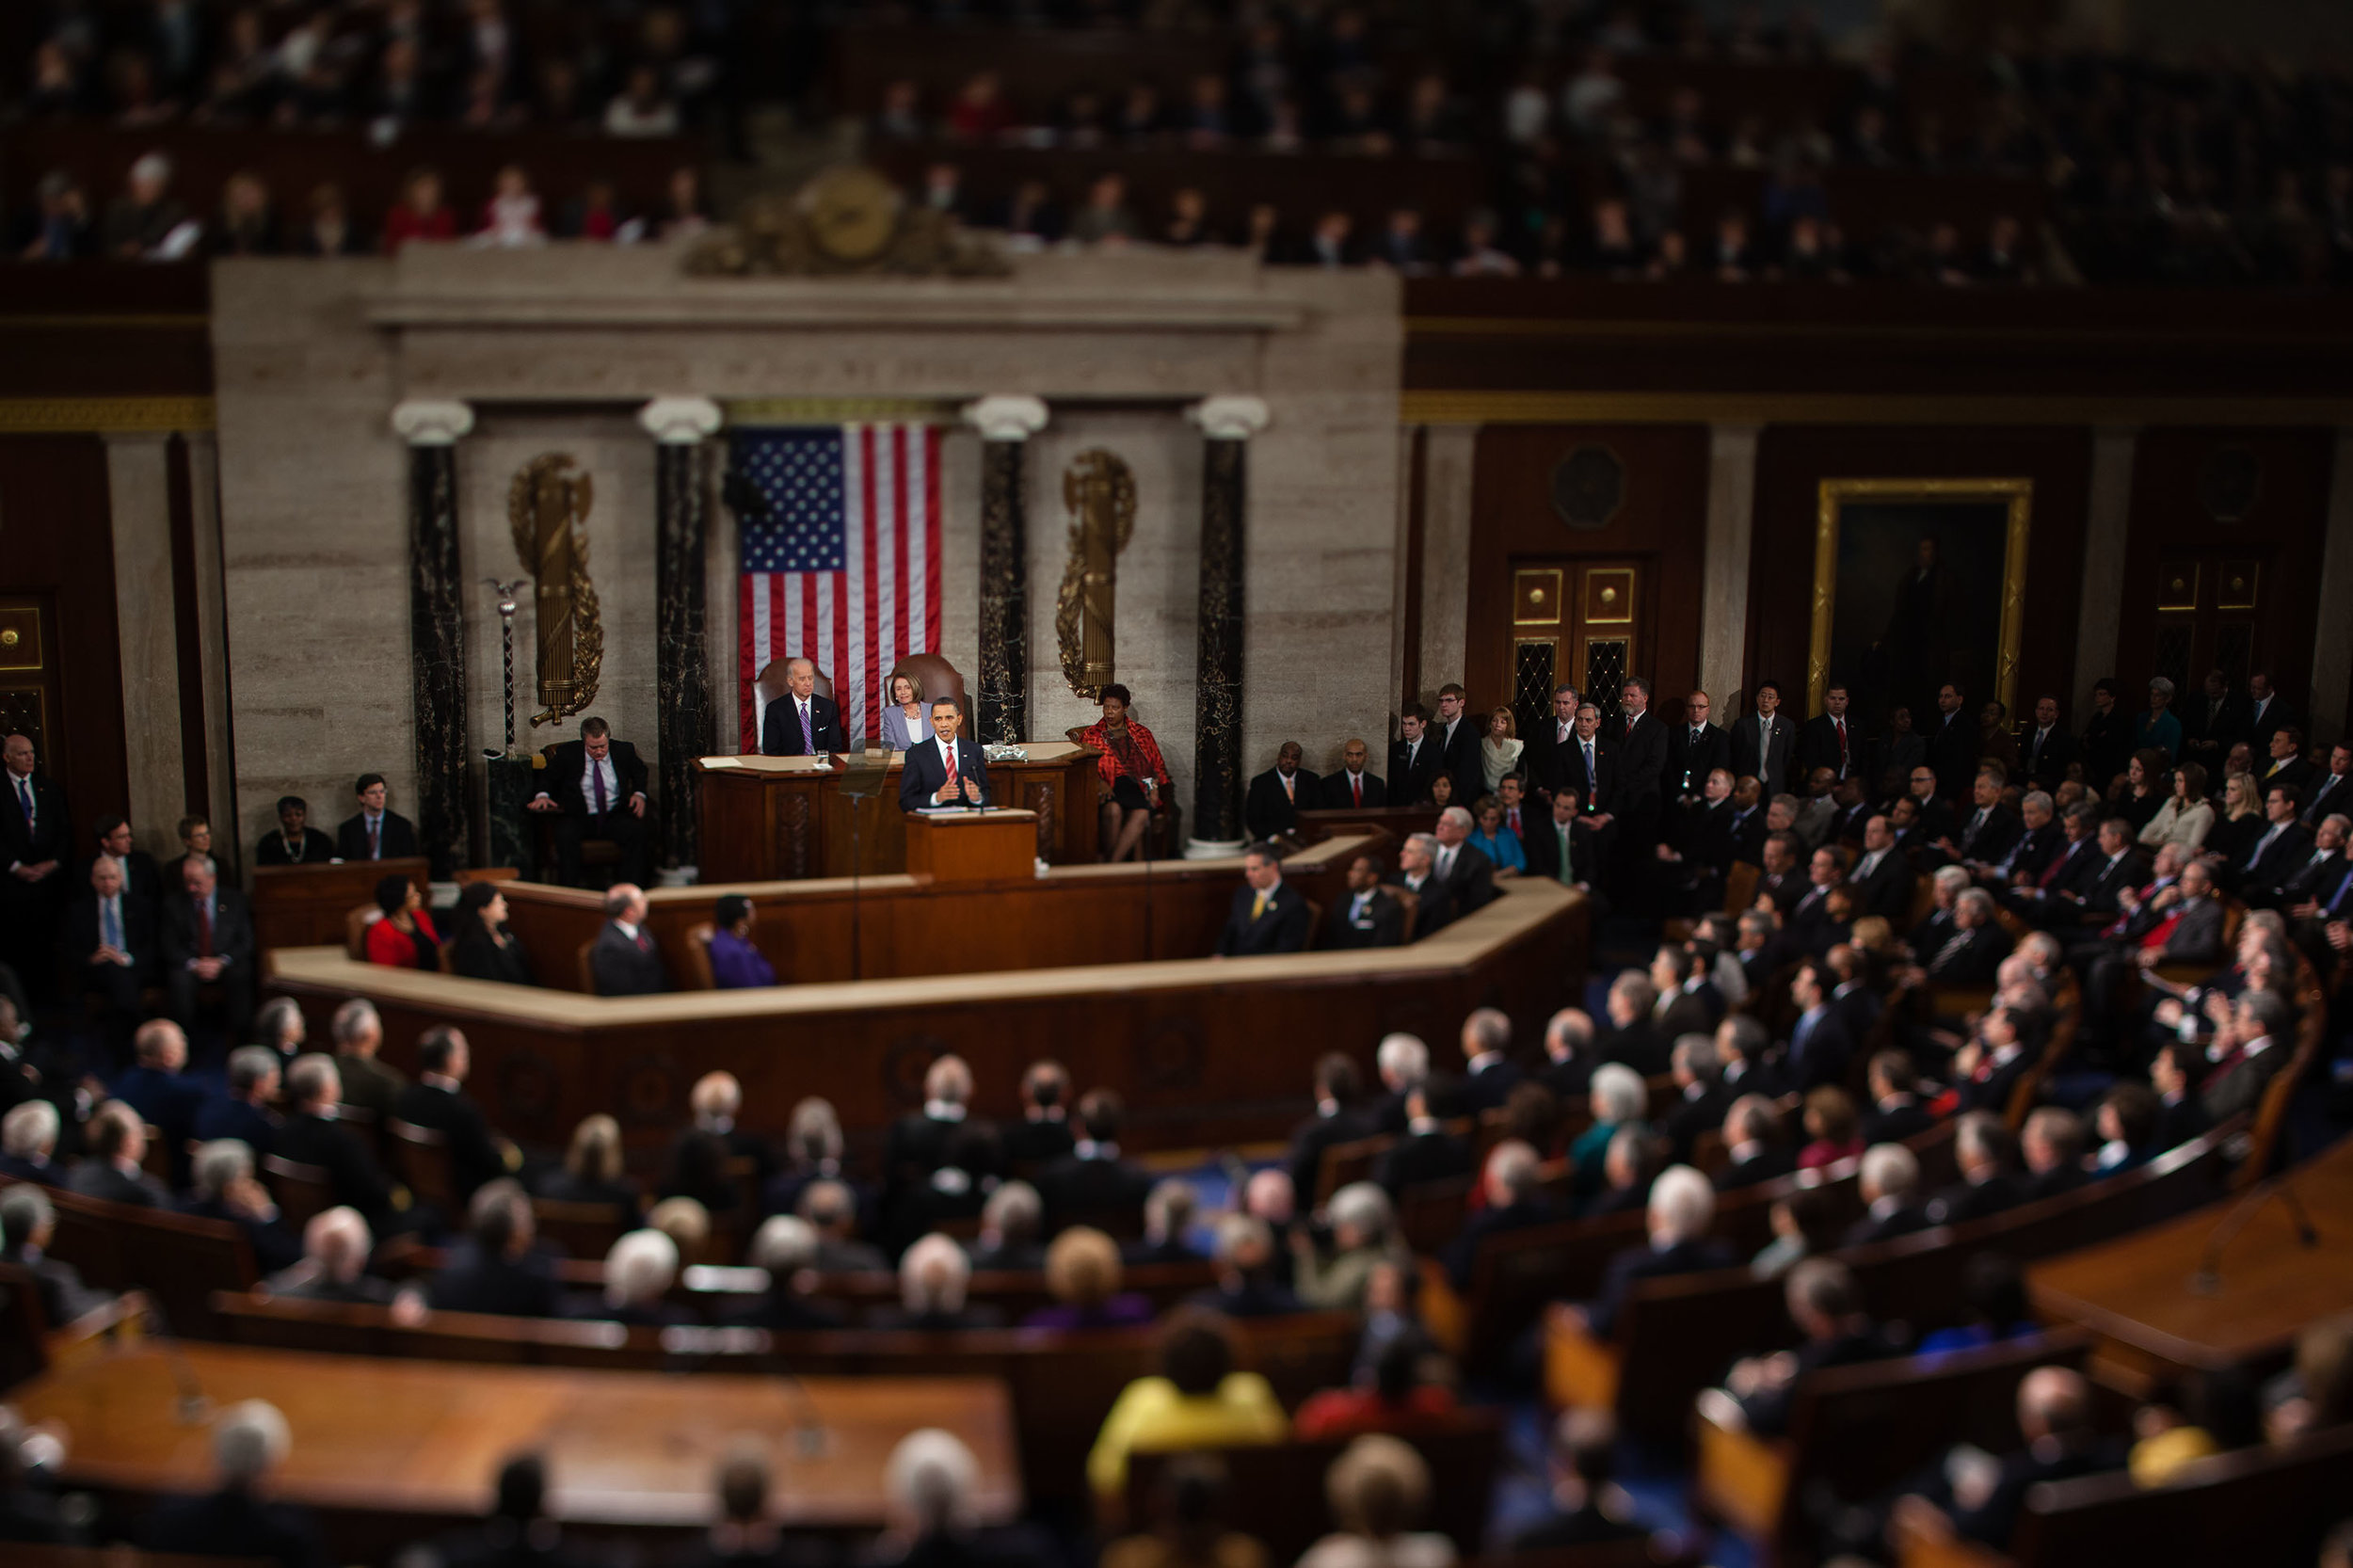 President Barack Obama gives his State of the Union address to a joint session of Congress in the House Chamber of the U.S. Capitol, Washington, D.C., 2010